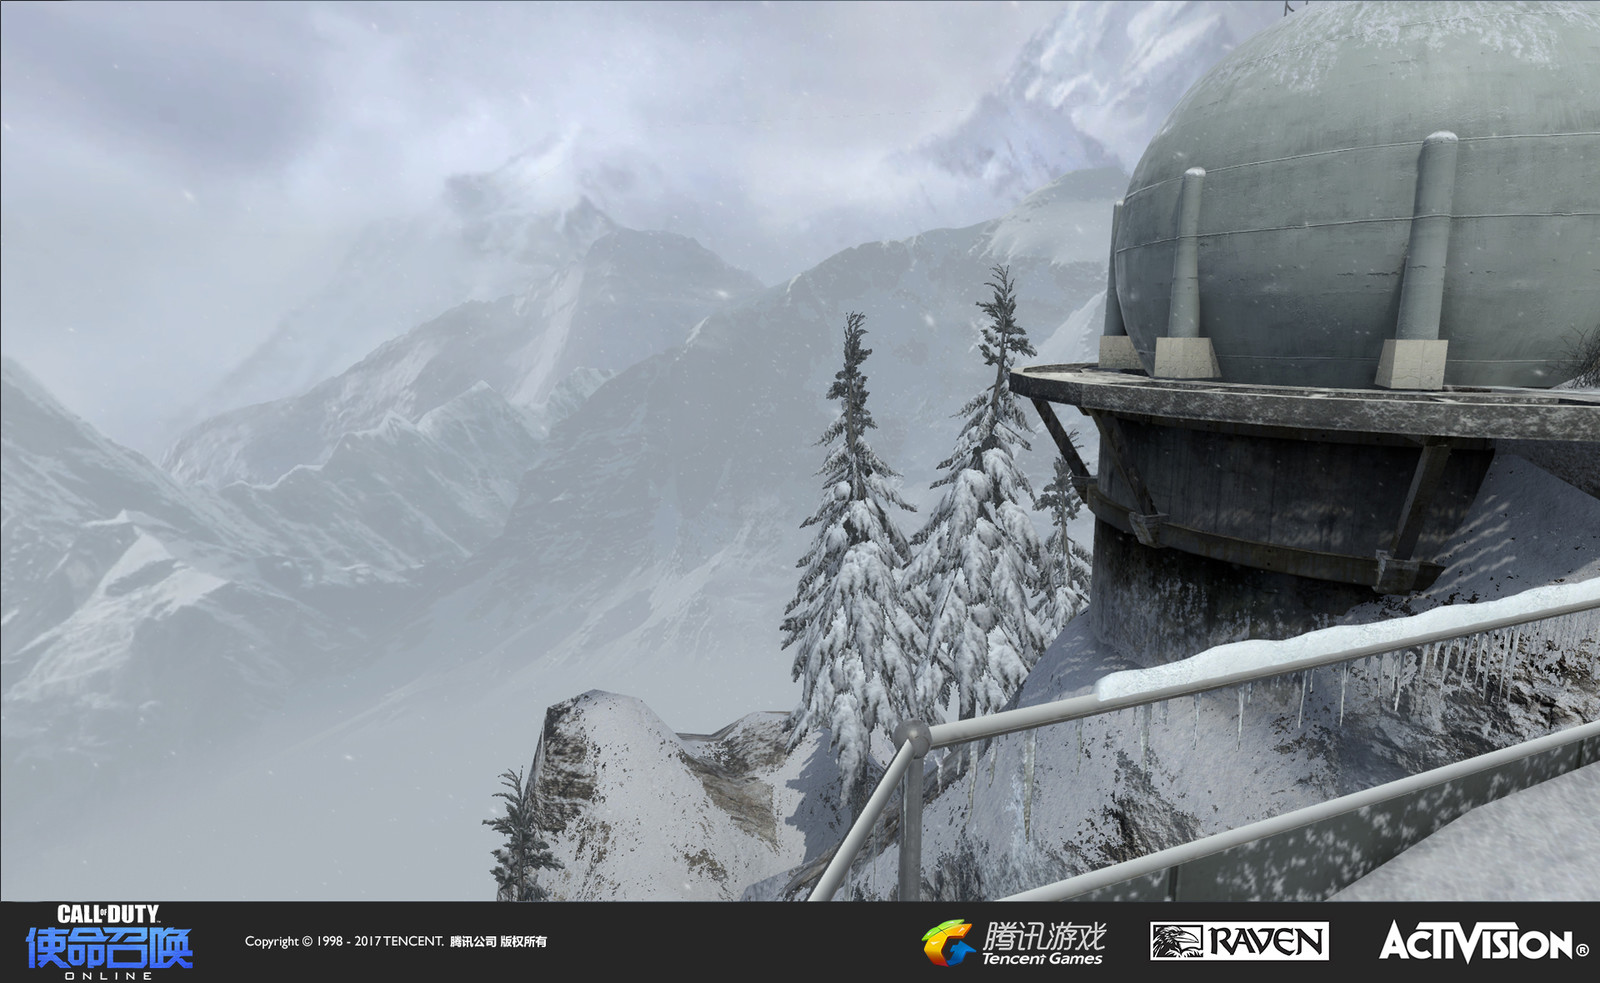 Summit: I recreated the vista of this map from its original version in Black Ops. I made the snow patterns and textures on the near-vista terrain, geo for the fuel pod, and set up the mountains and atmosphere. Jeff Degenhardt created the mountains.